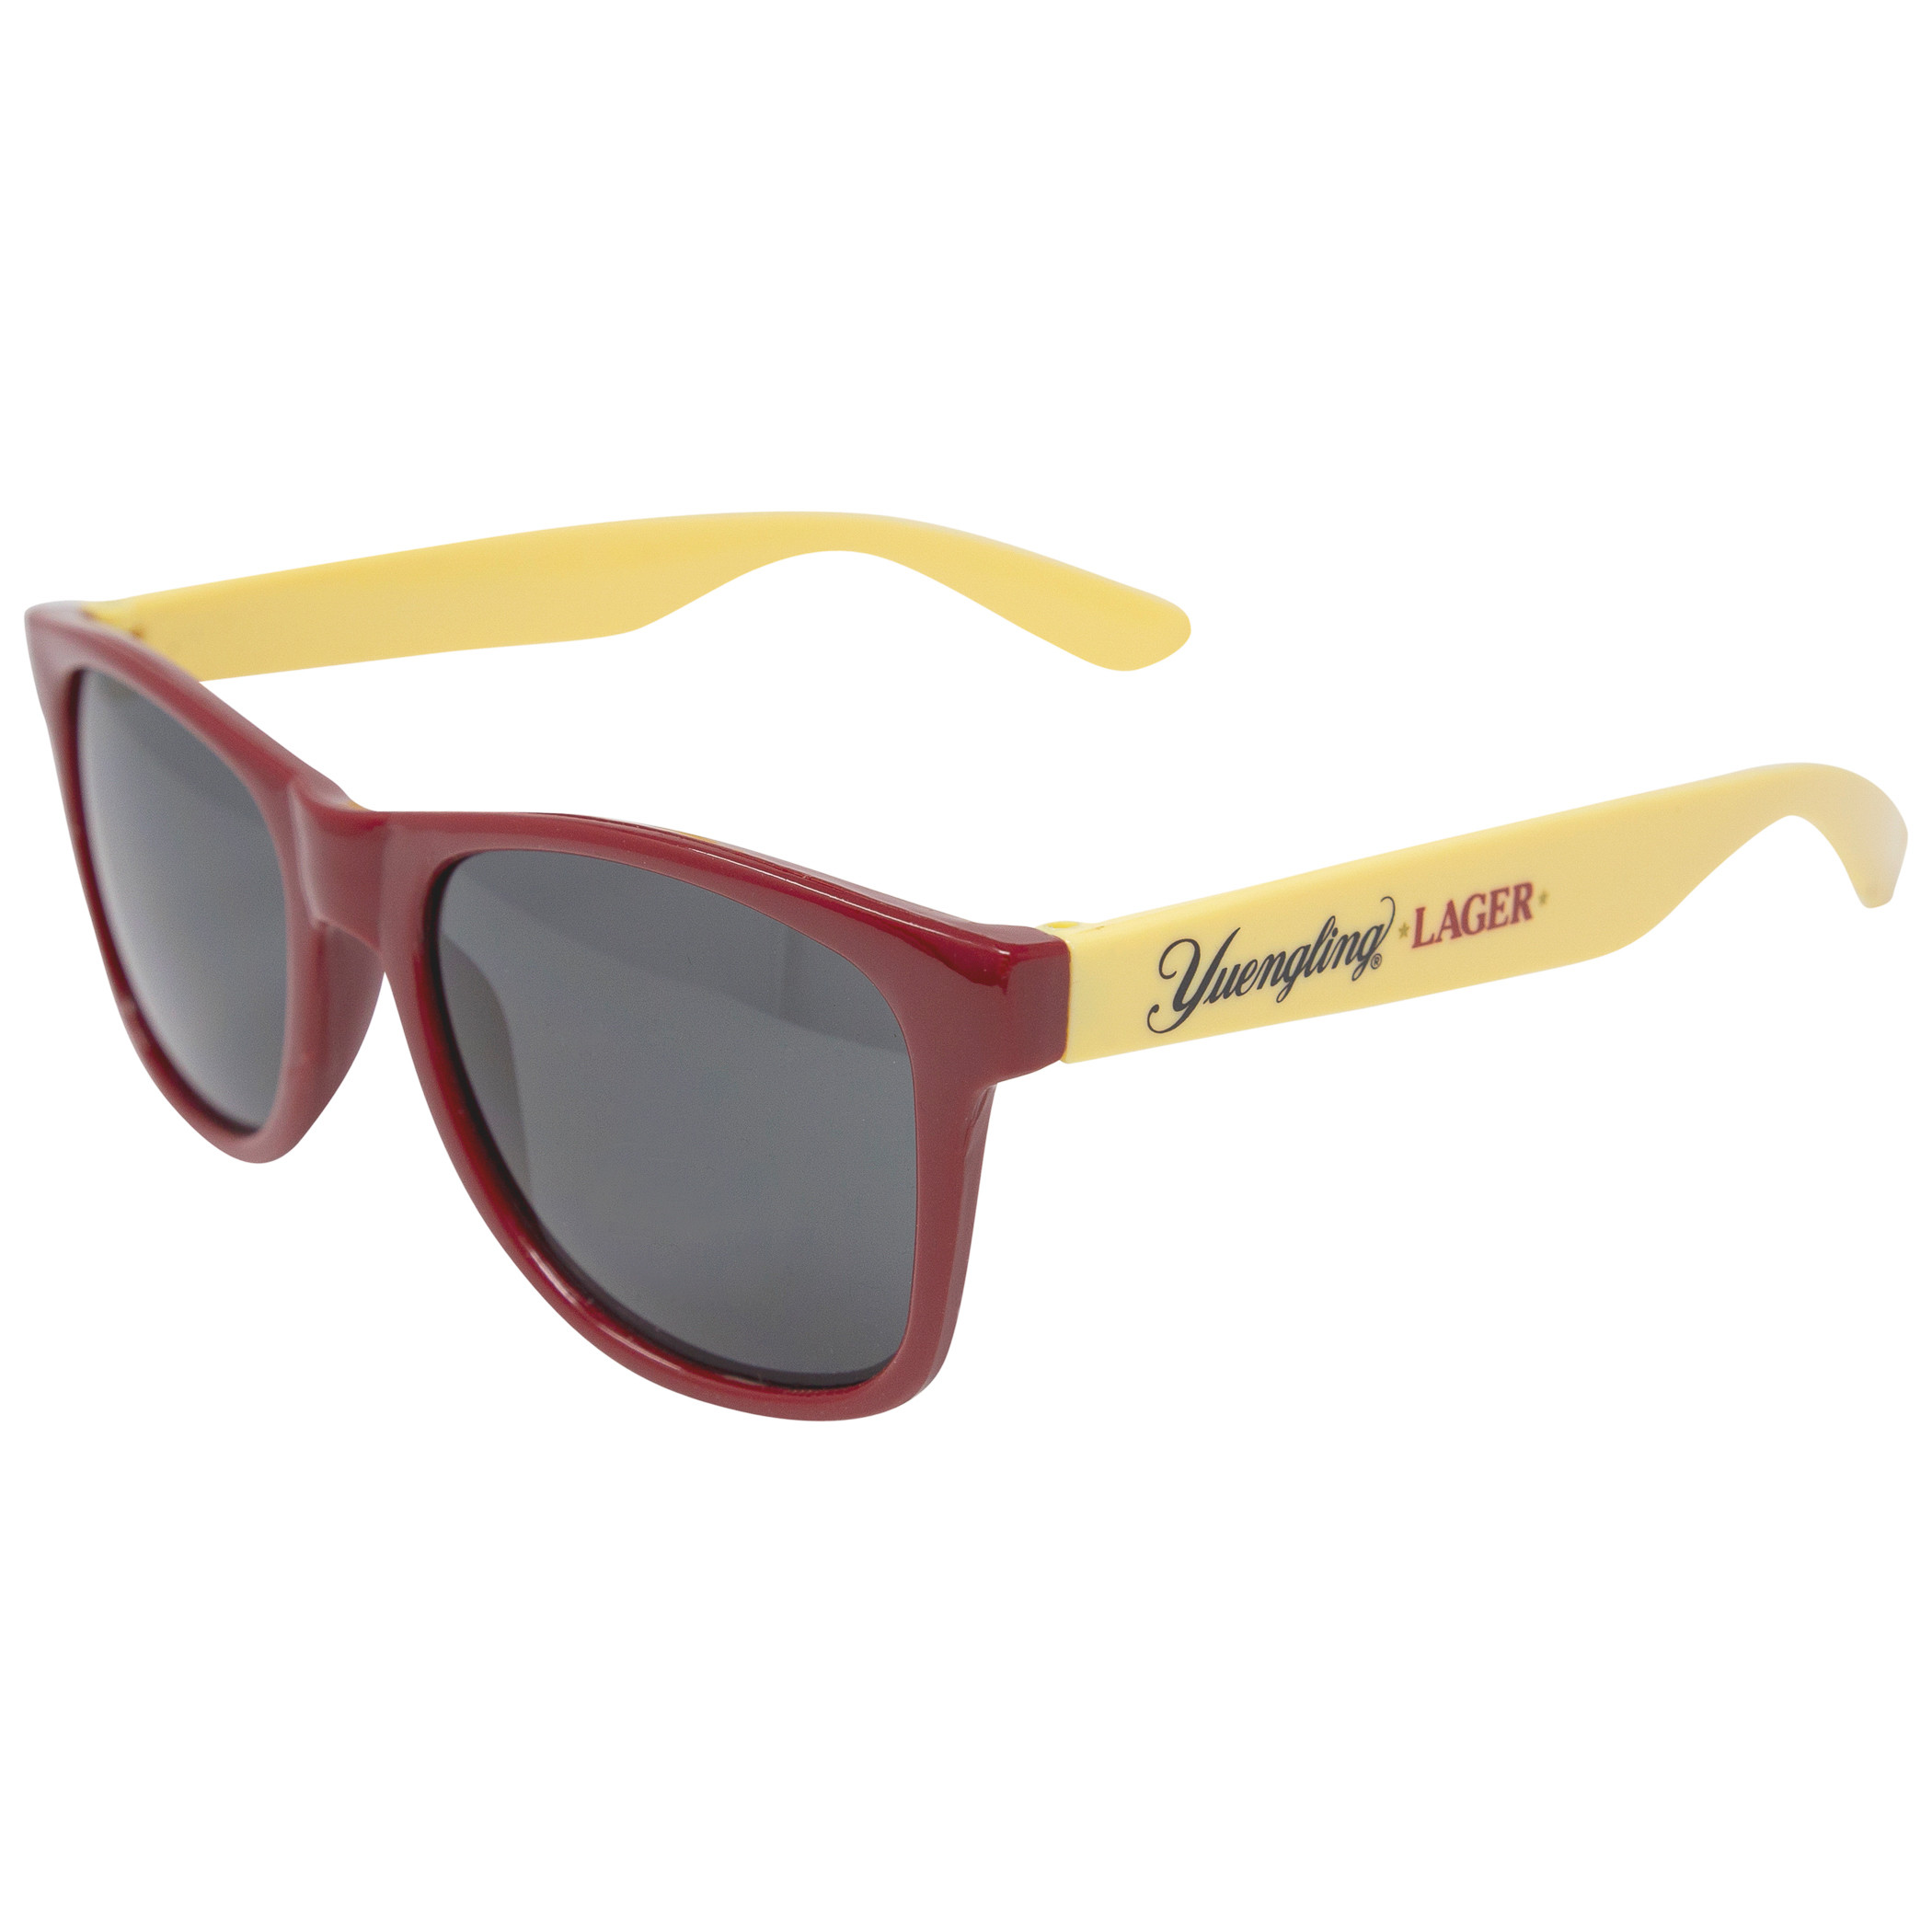 Yuengling Multi-Colored Sunglasses